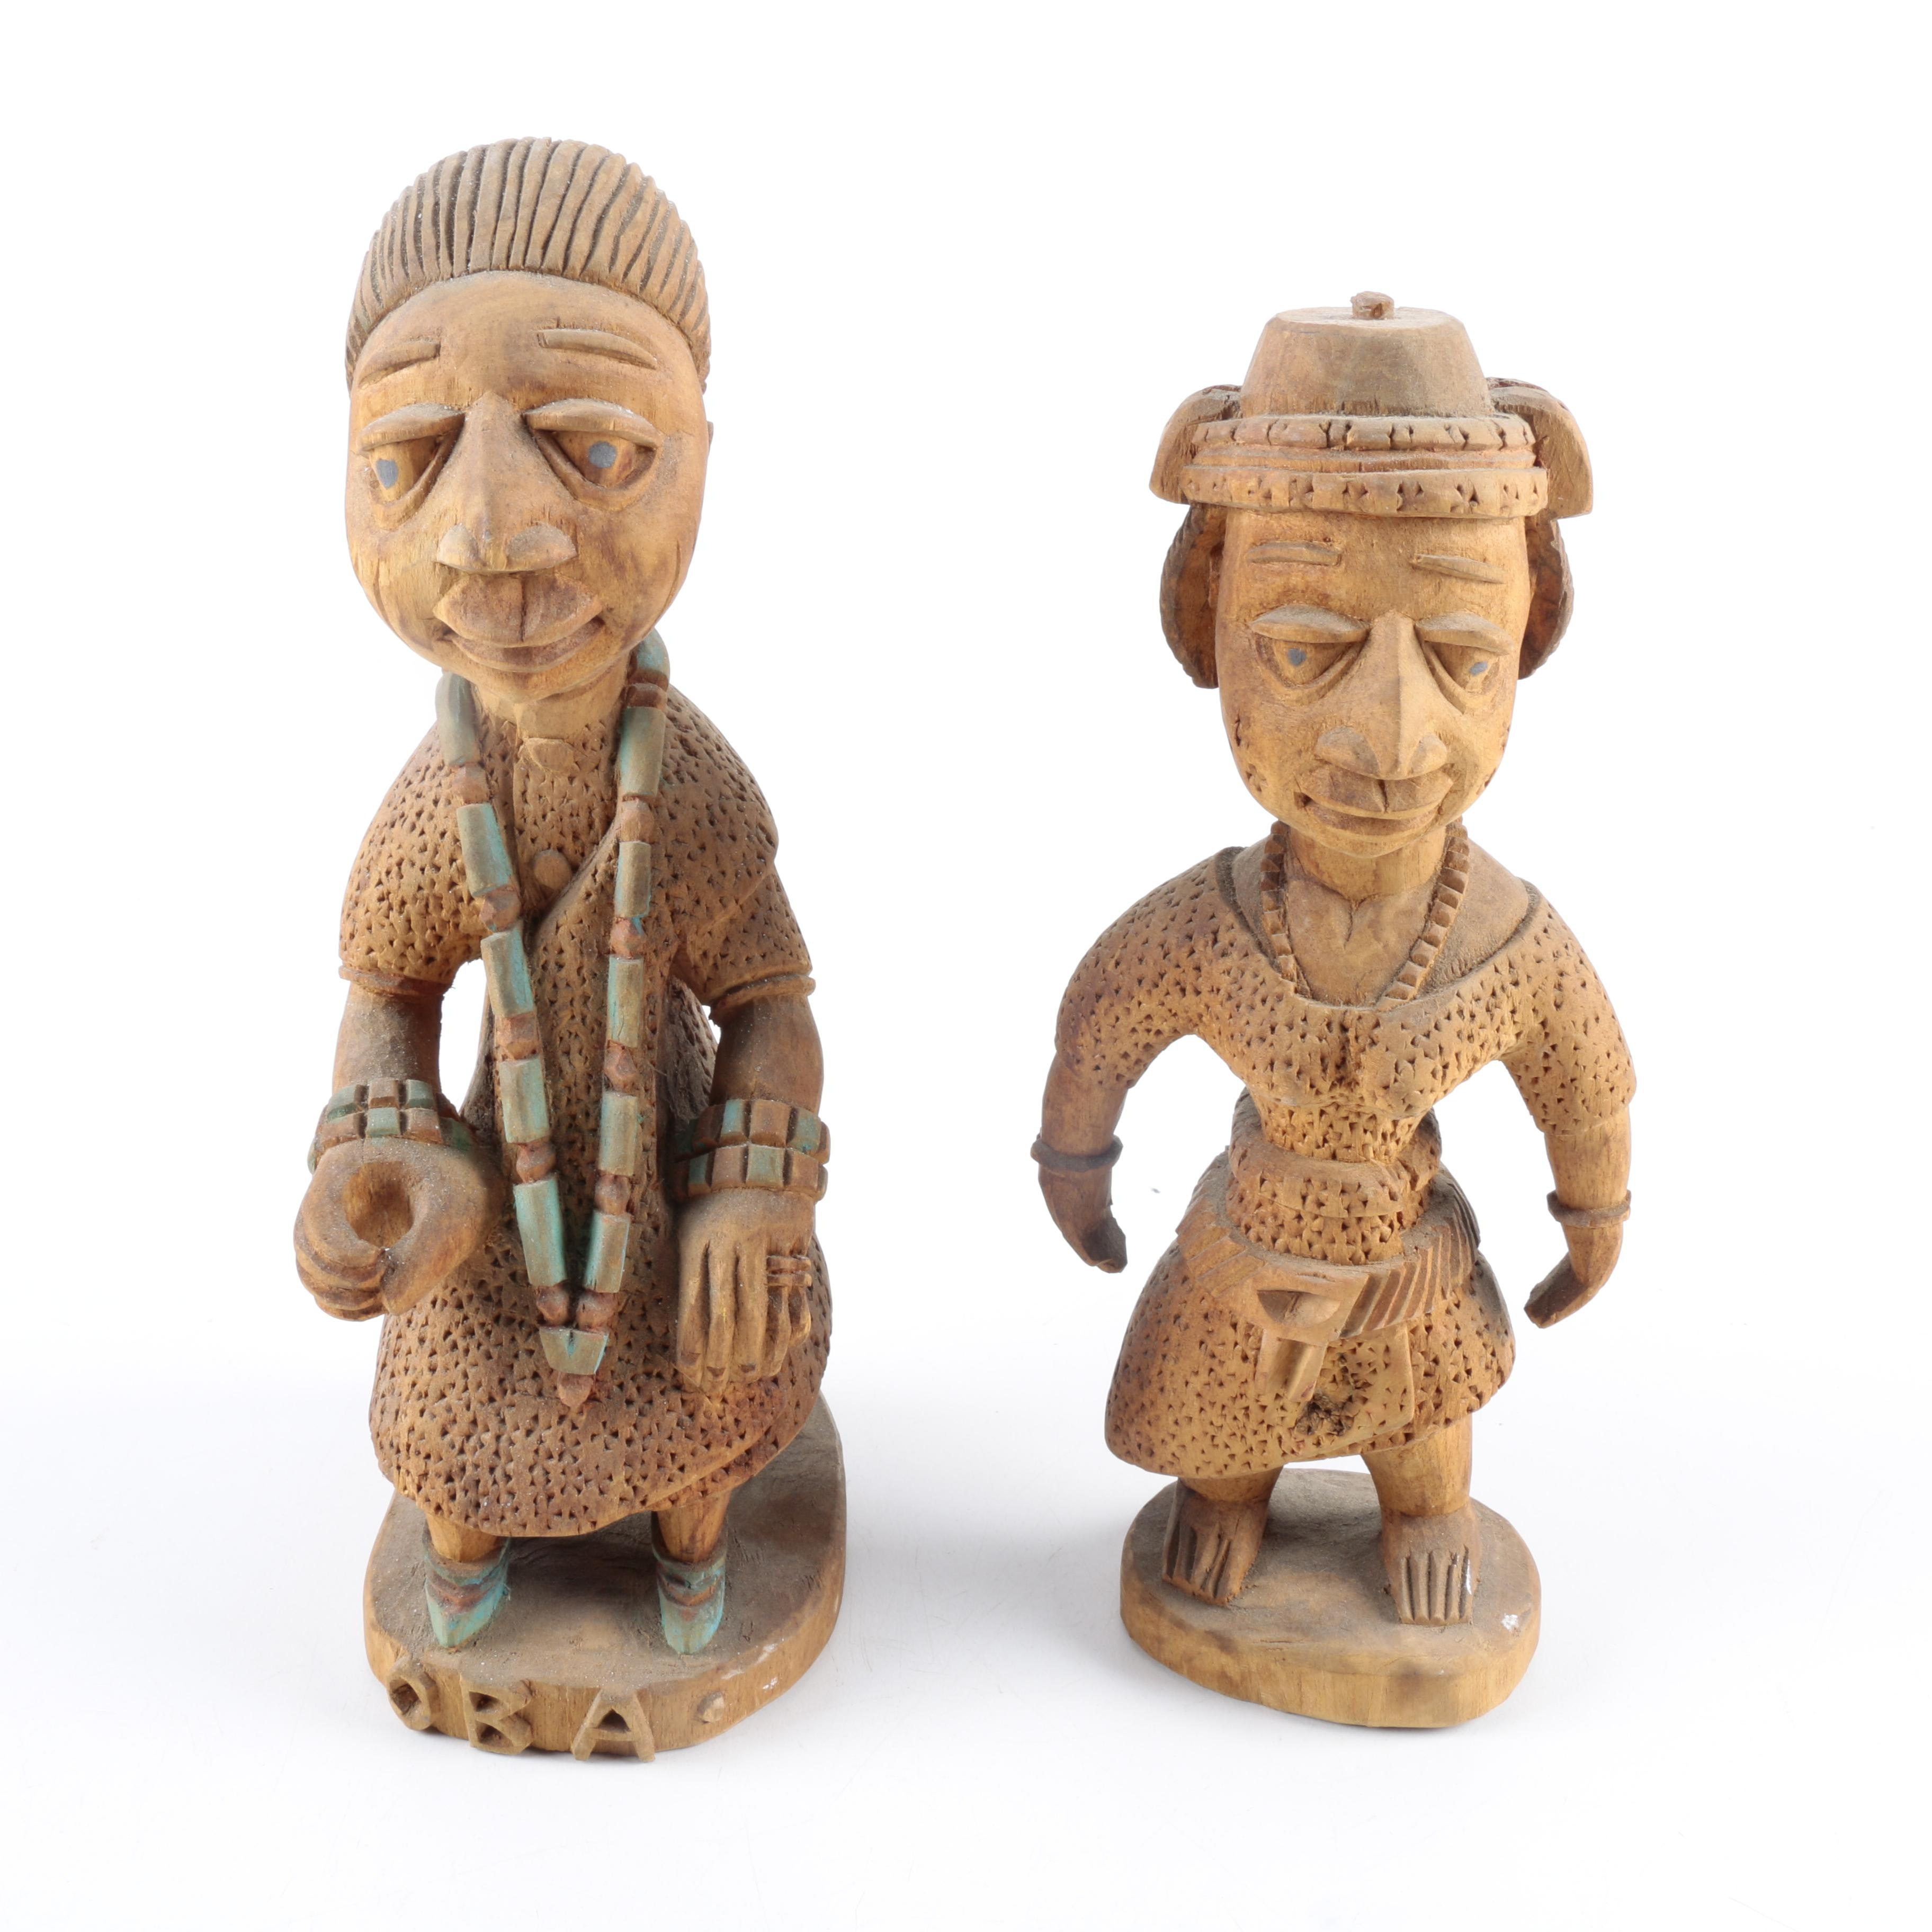 Hand Carved Wooden Figurines